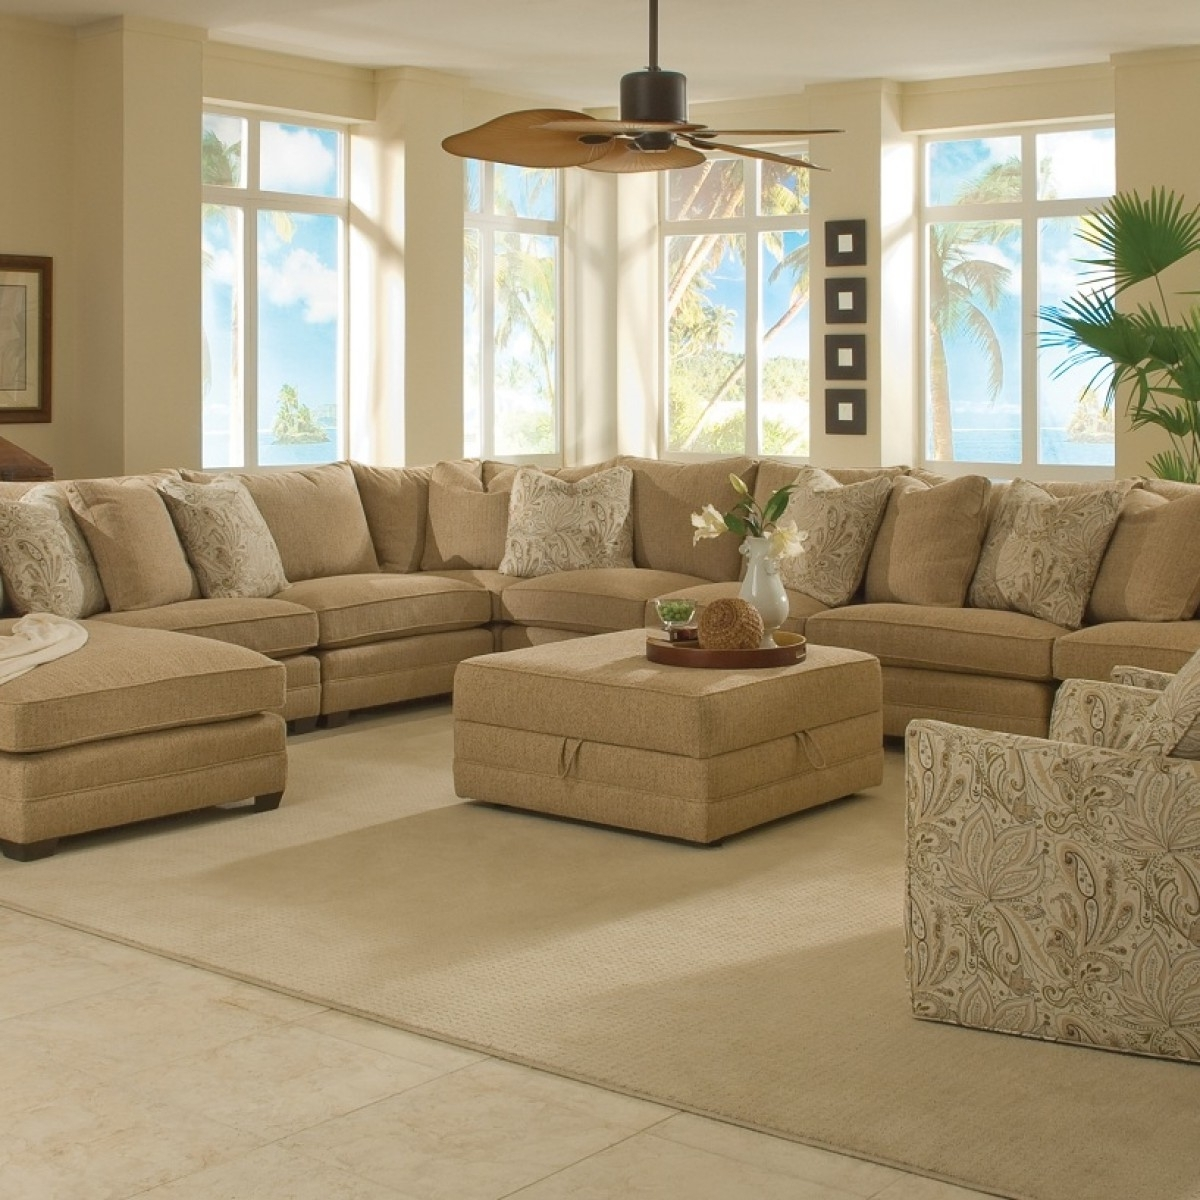 Sectional Couches With Large Ottoman With Well Liked Factors To Consider Before Buying An Extra Large Sectional Sofa (View 9 of 15)